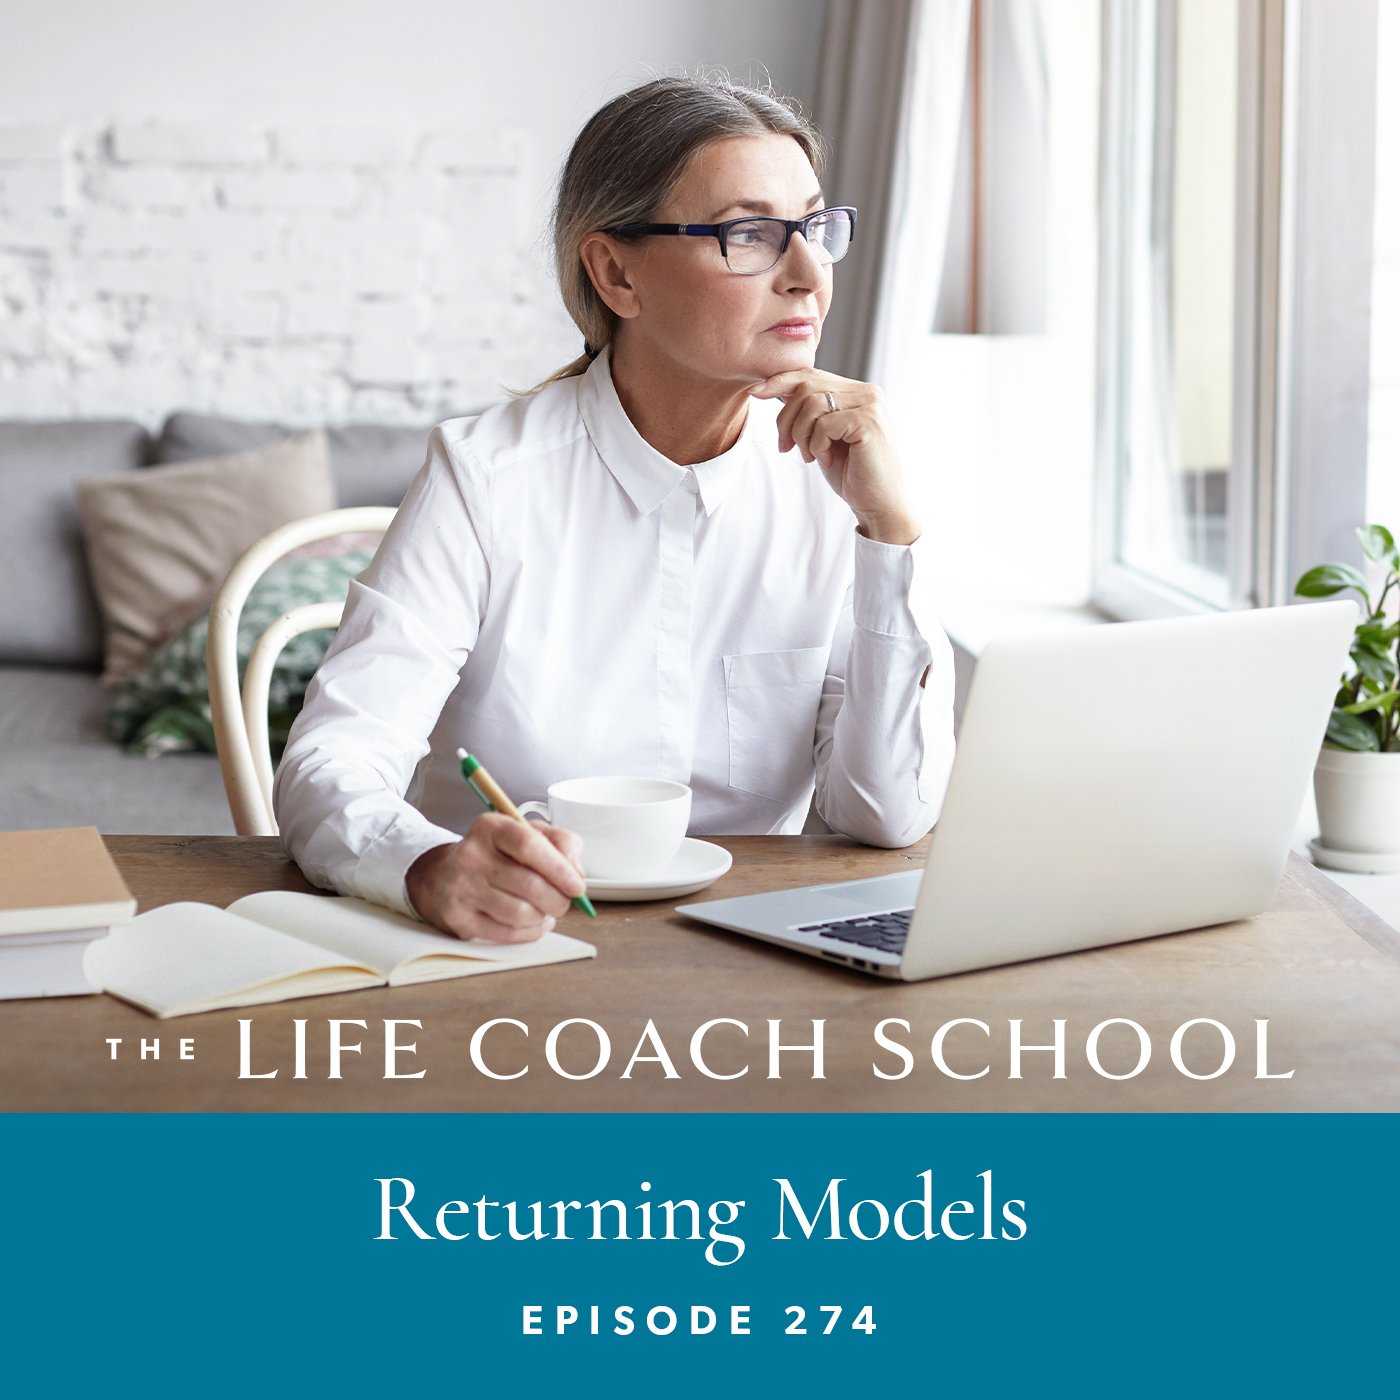 The Life Coach School Podcast with Brooke Castillo | Episode 274 | Returning Models